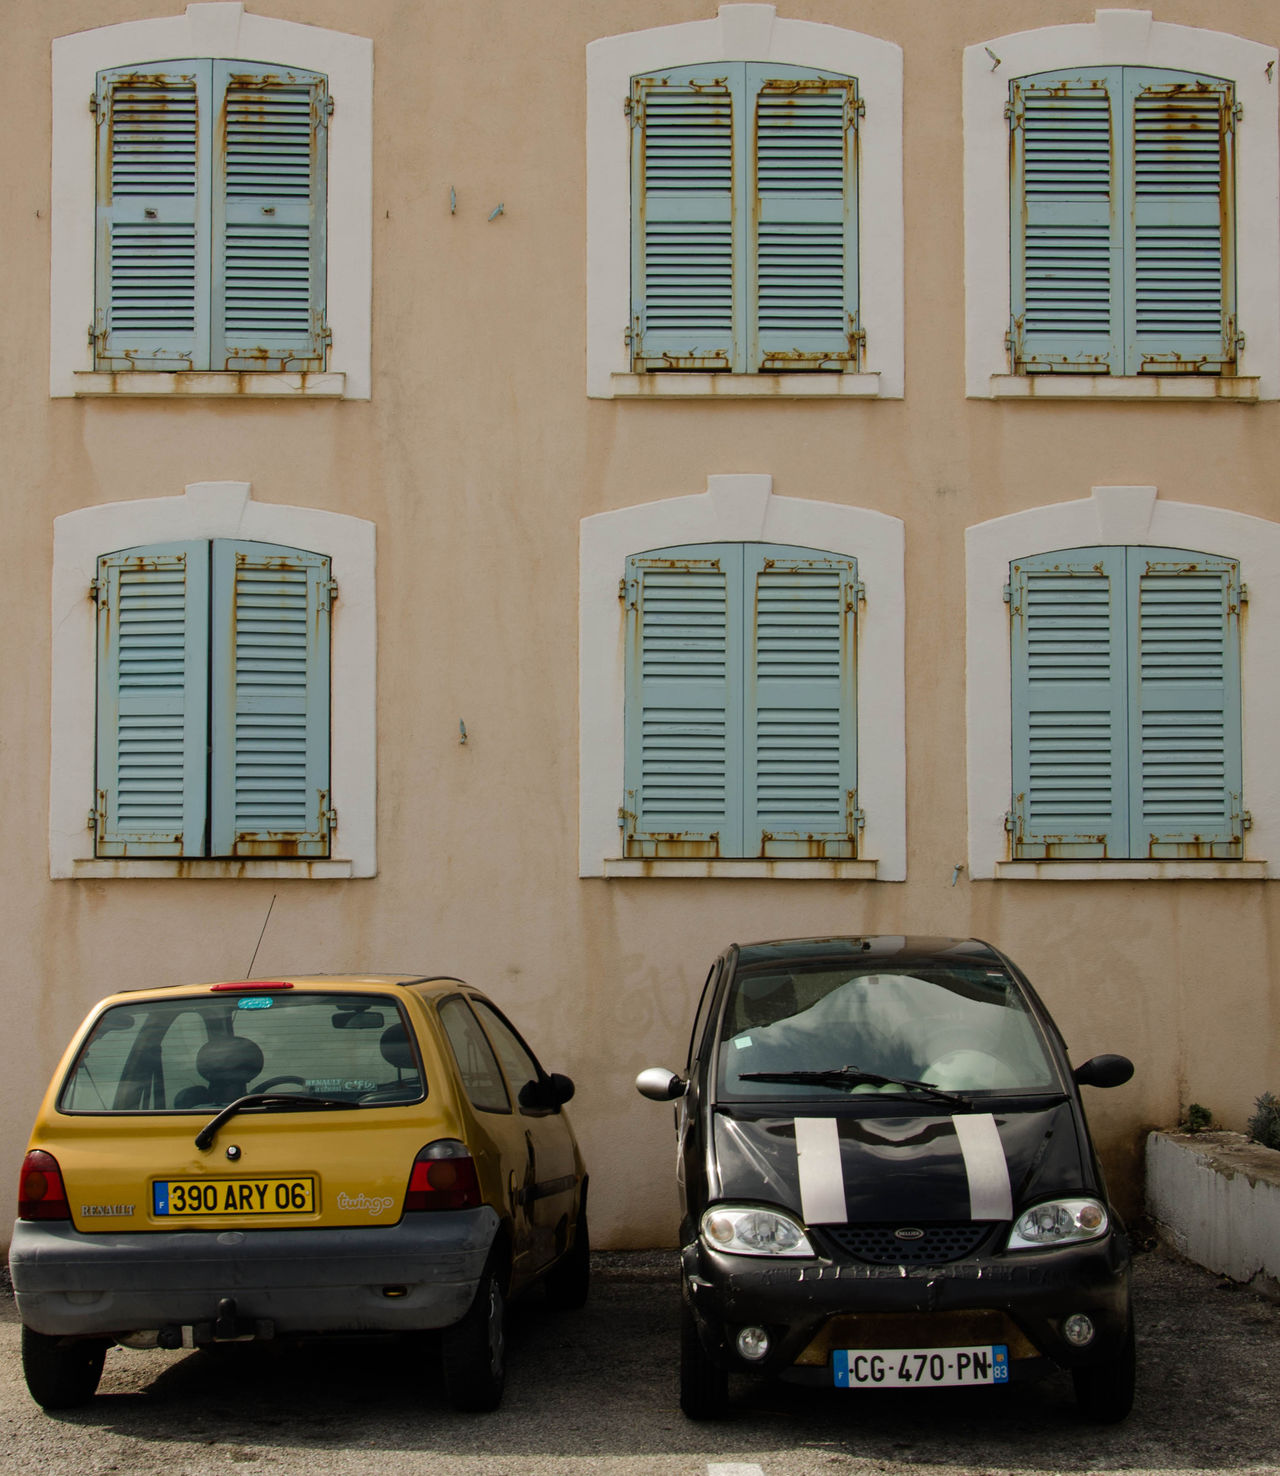 Architecture Building Exterior Built Structure Car City France Land Vehicle Mode Of Transport No People Old-fashioned Outdoors Parking Stationary Transportation Windows Yellow Yellow Car